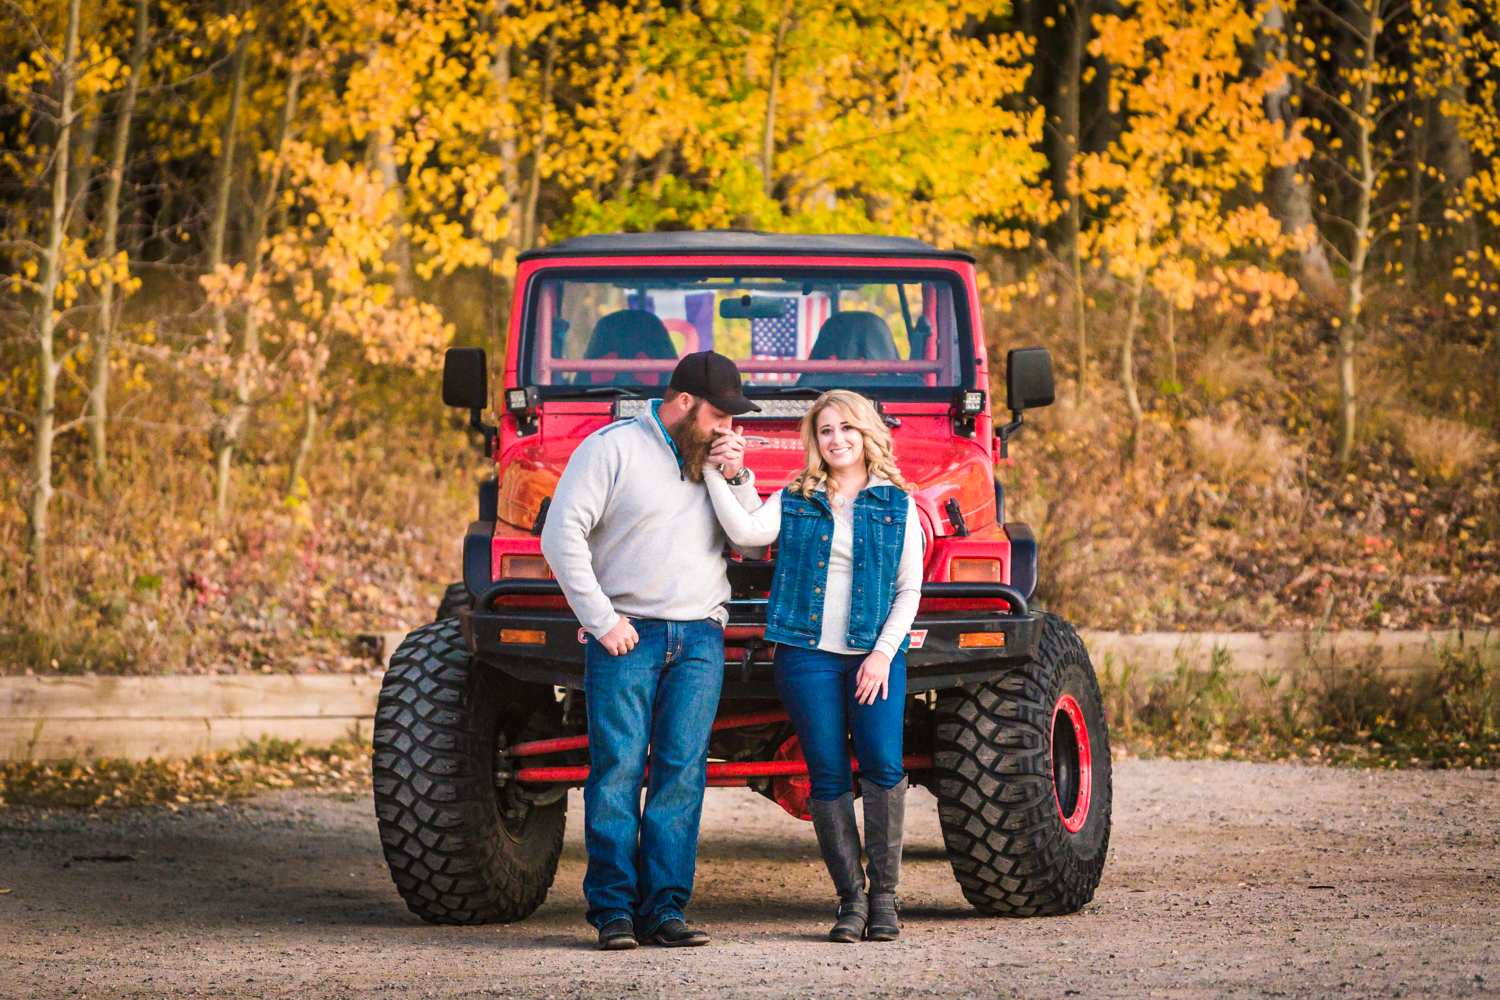 Jeeping engagement pictures taken in the Colorado mountains by JMGant Photography.